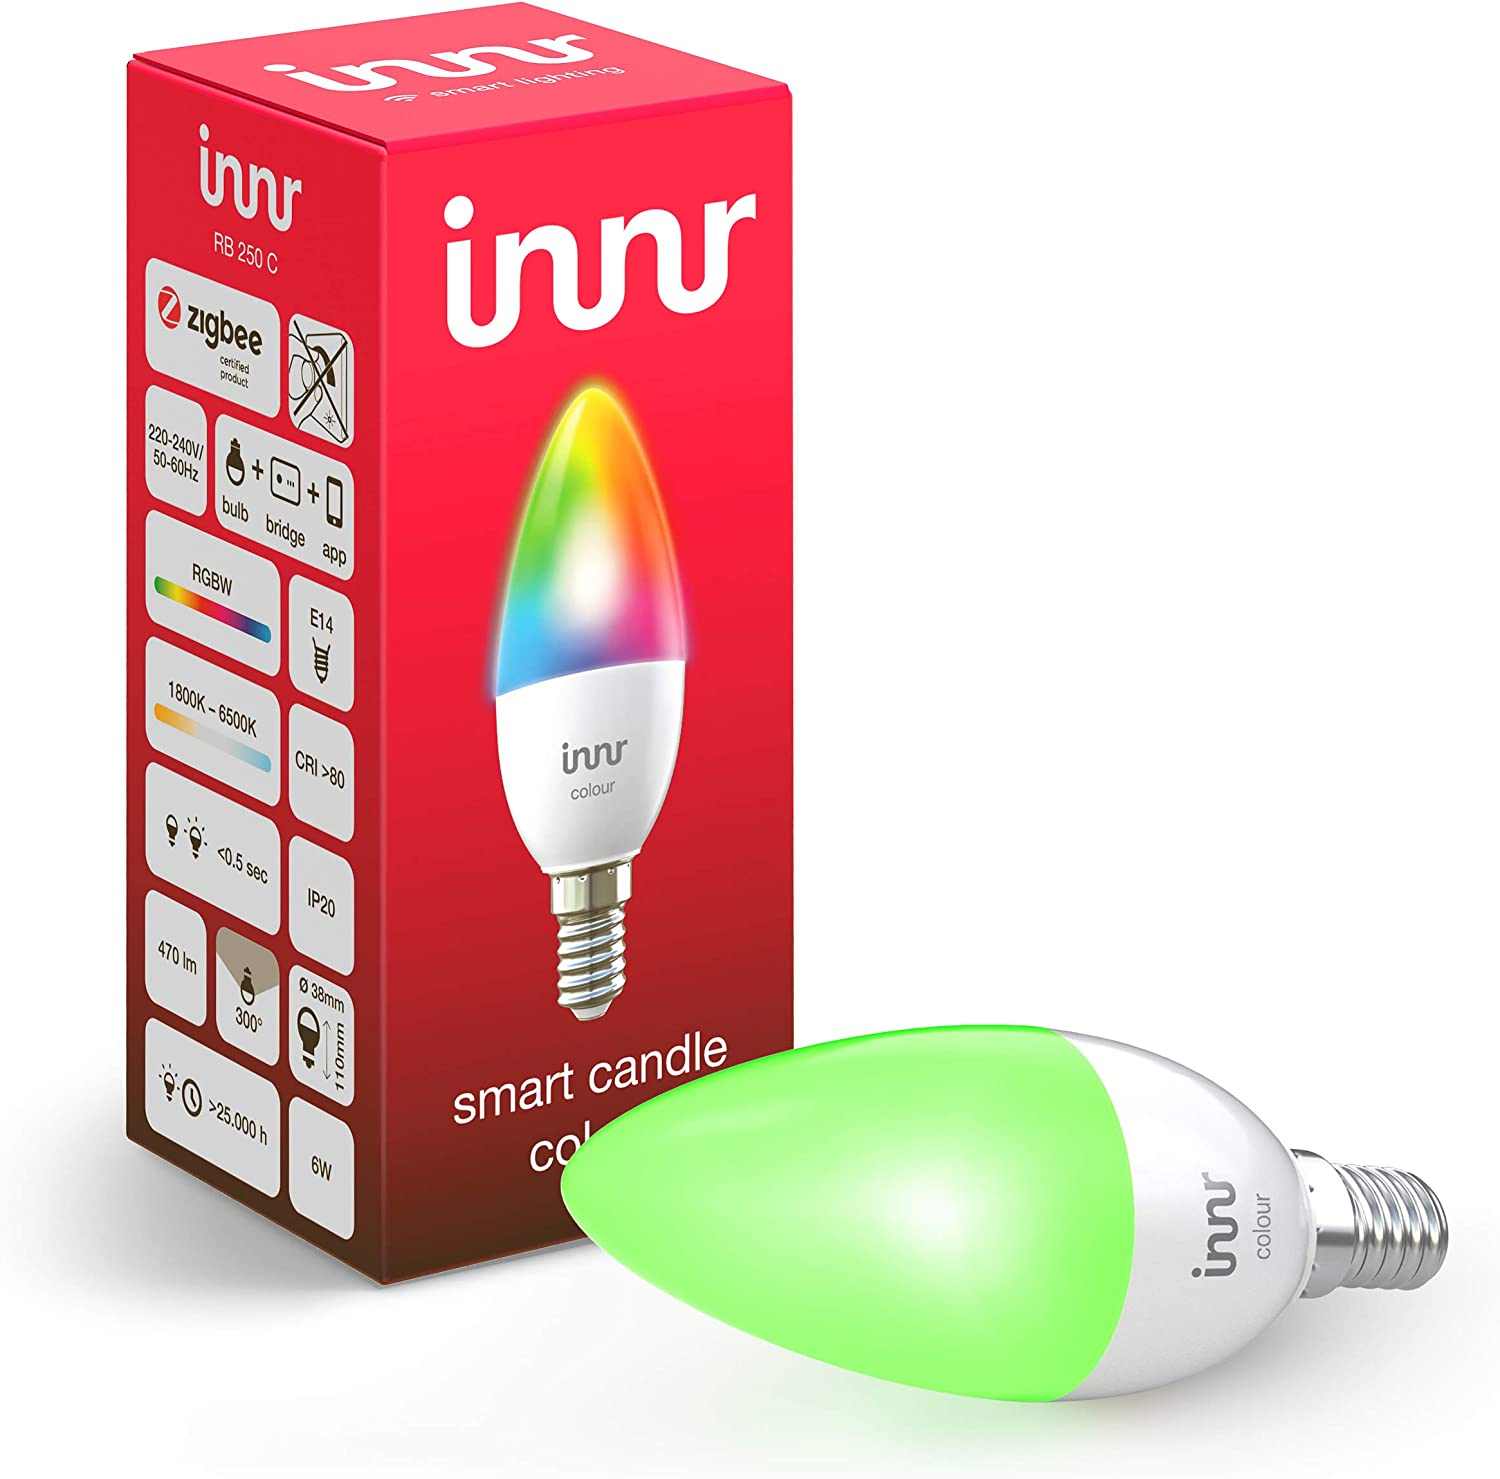 Innr Bombilla LED conectada, E14, color, RGBW, works with Philips Hue* (Puente requerido) & Echo Plus compatible, RB 250C